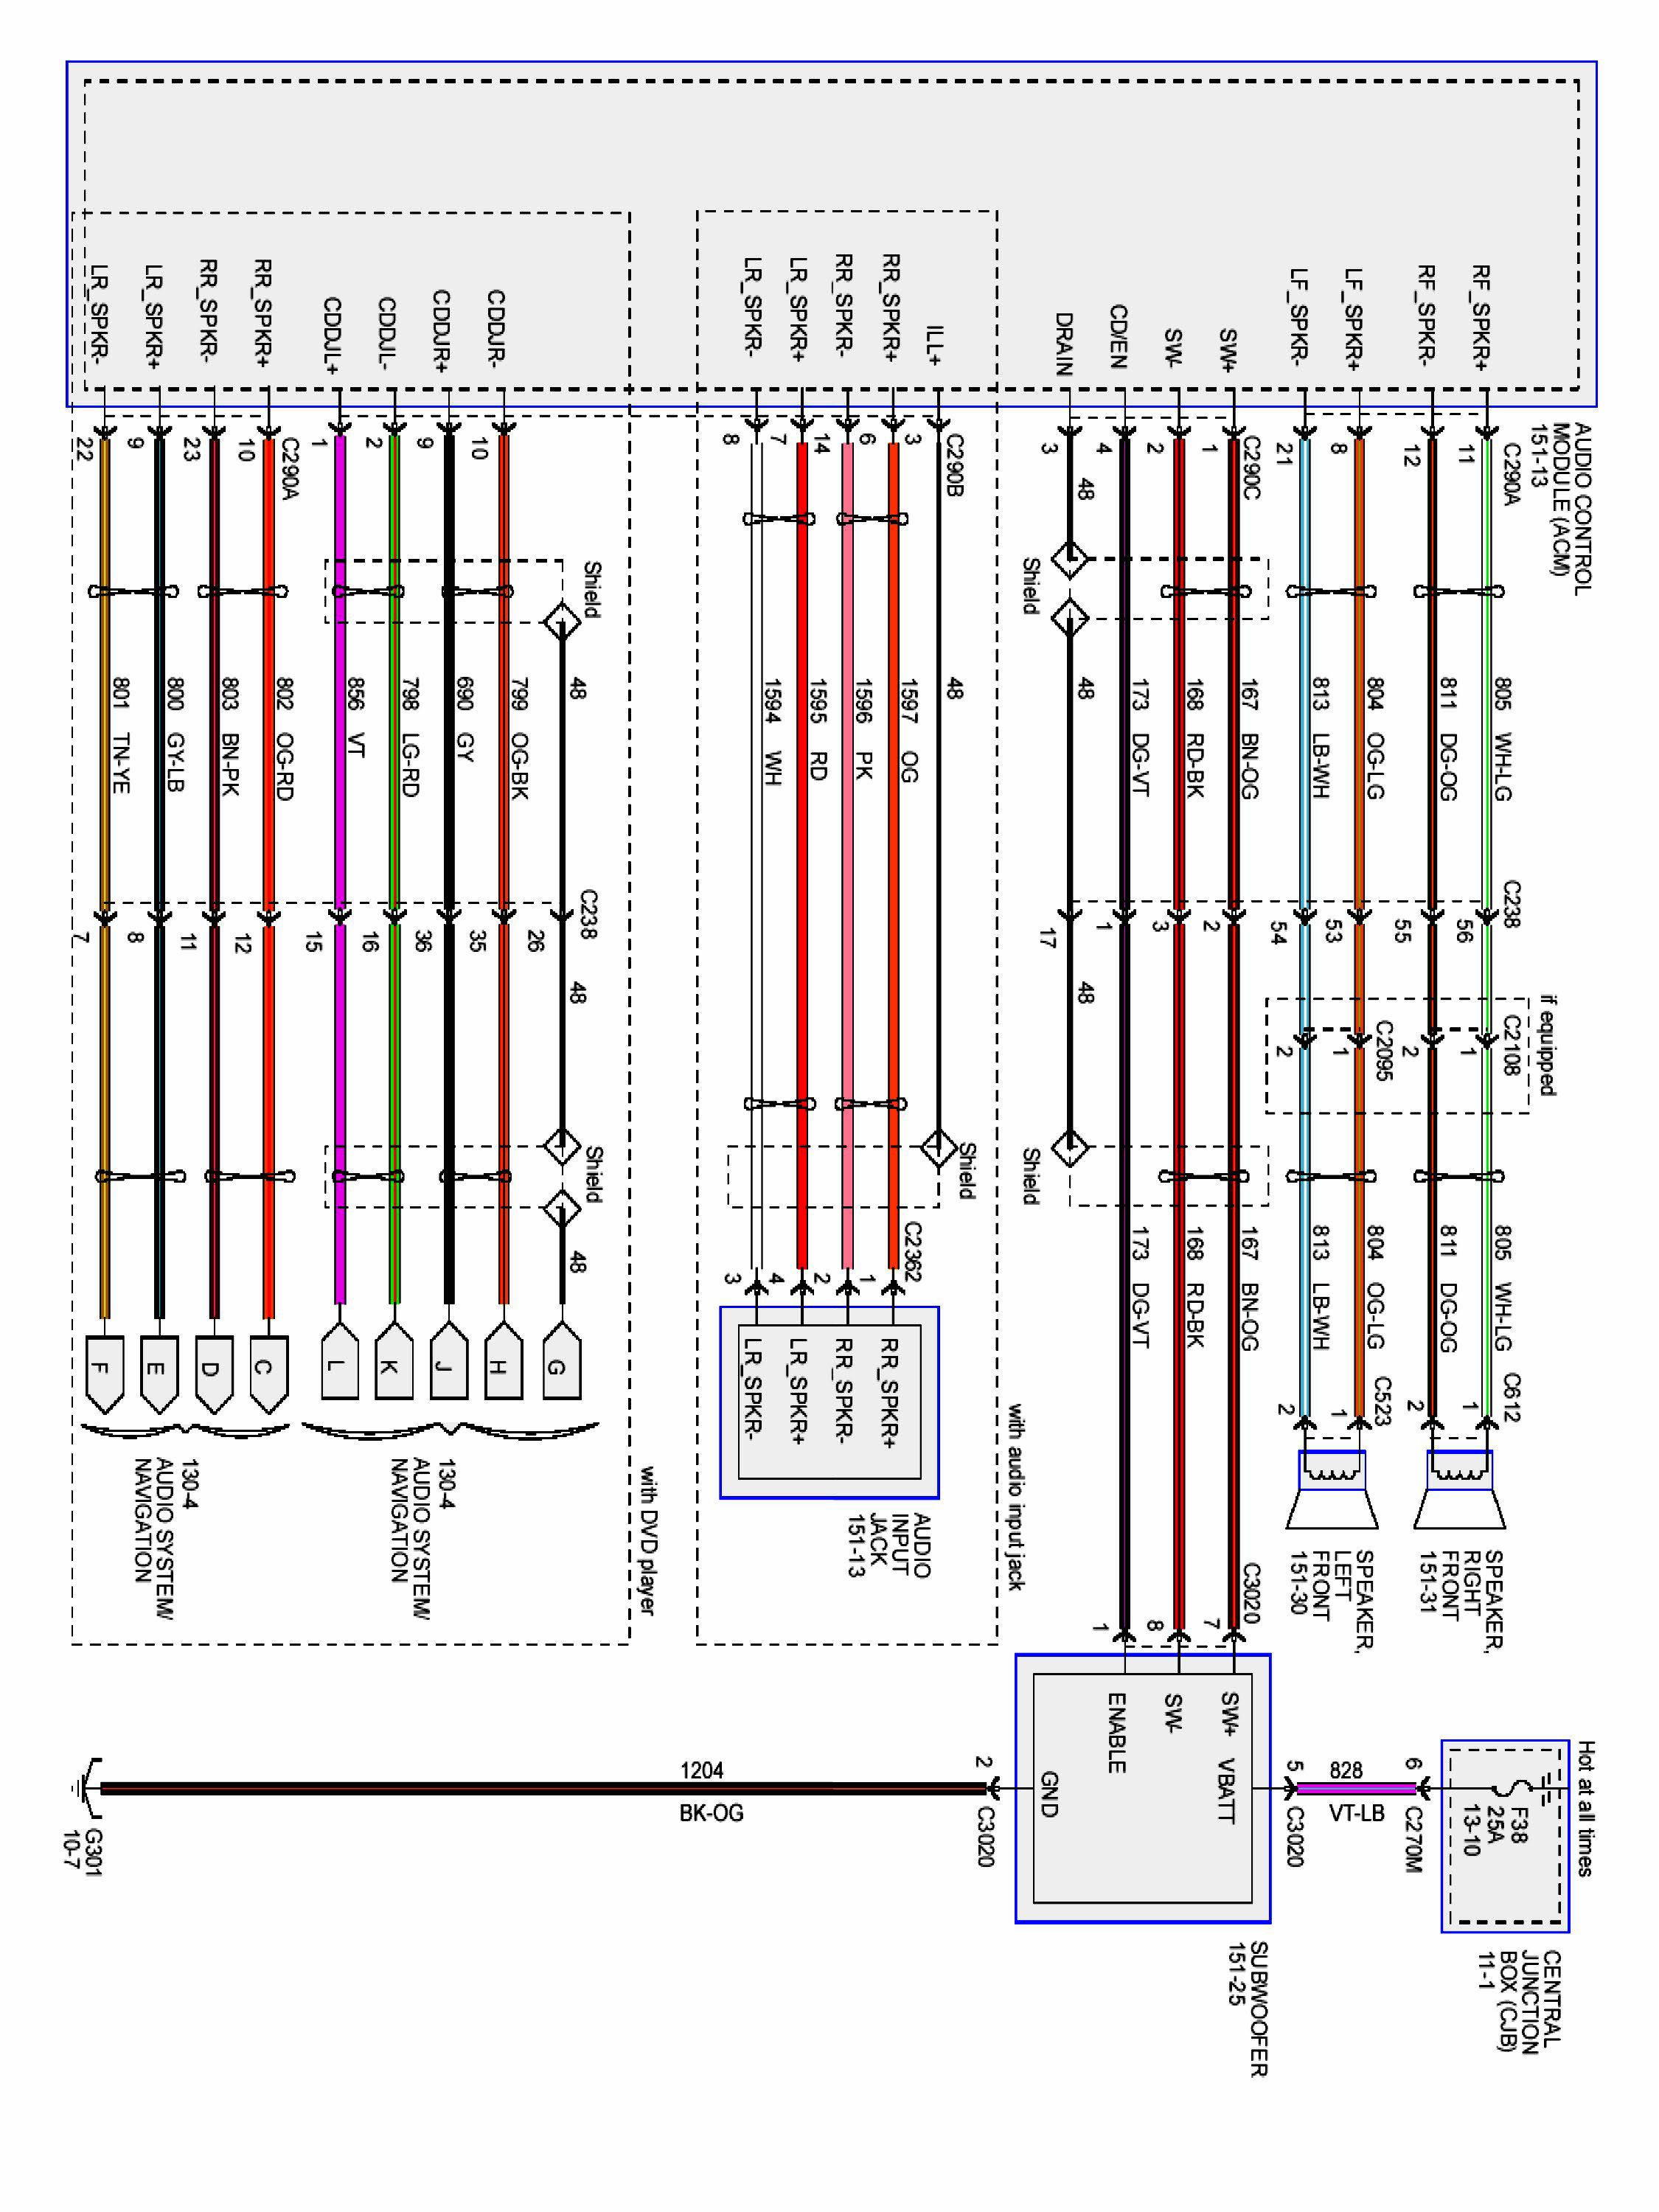 2005 ford f 150 stereo wiring diagram wiring diagram expert 2005 f150 stereo wiring diagram 2005 f150 stereo wiring diagram